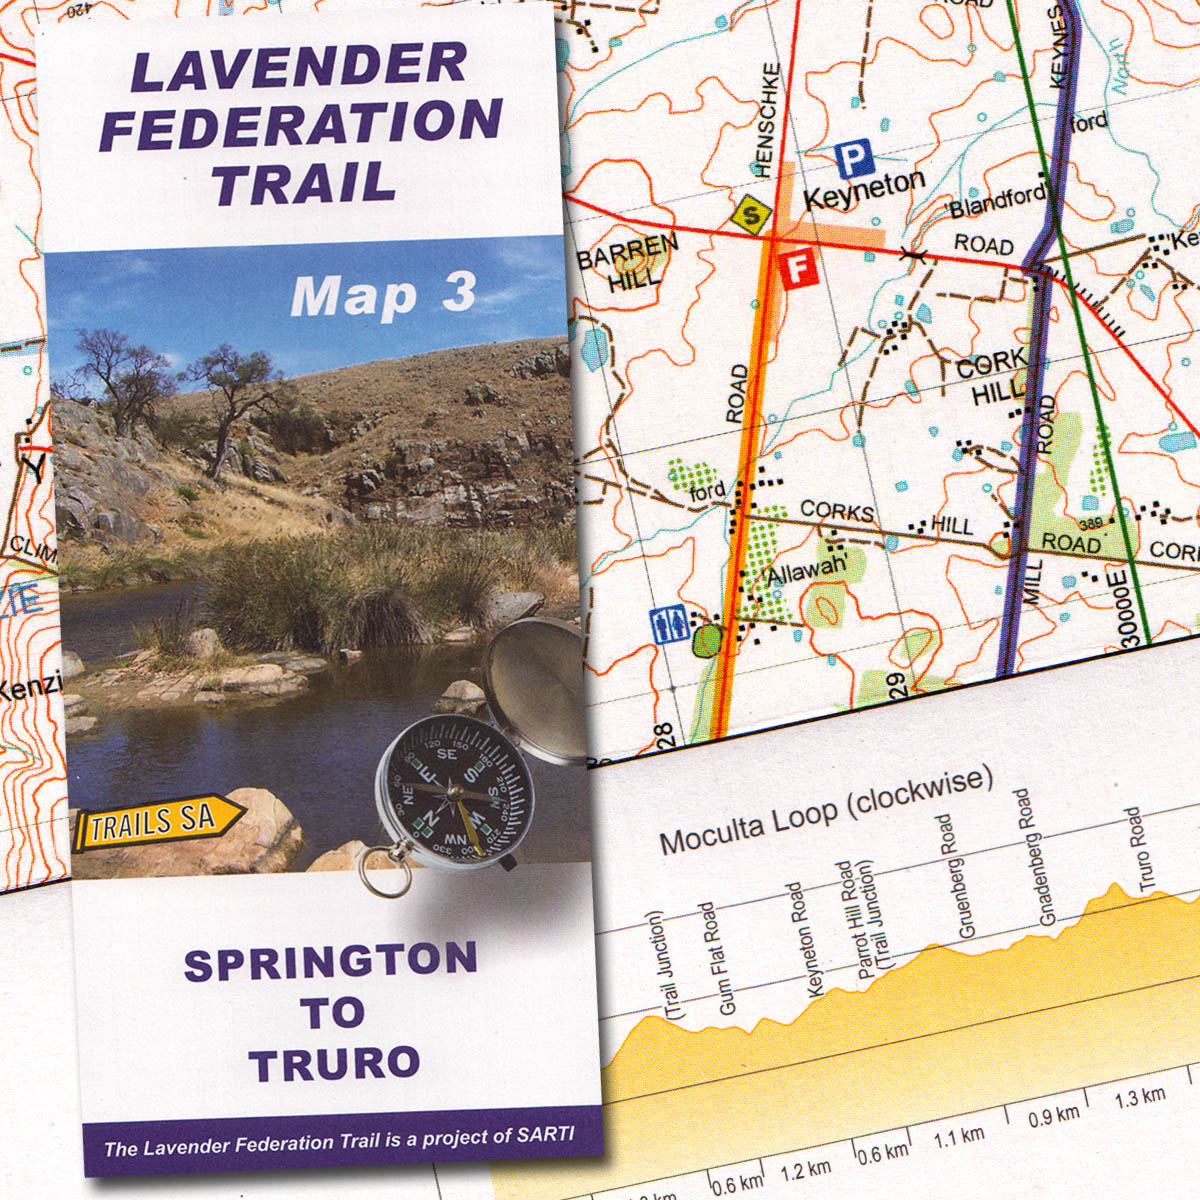 Lavender Federation Trail Map 3 Springton to Truro The Friends